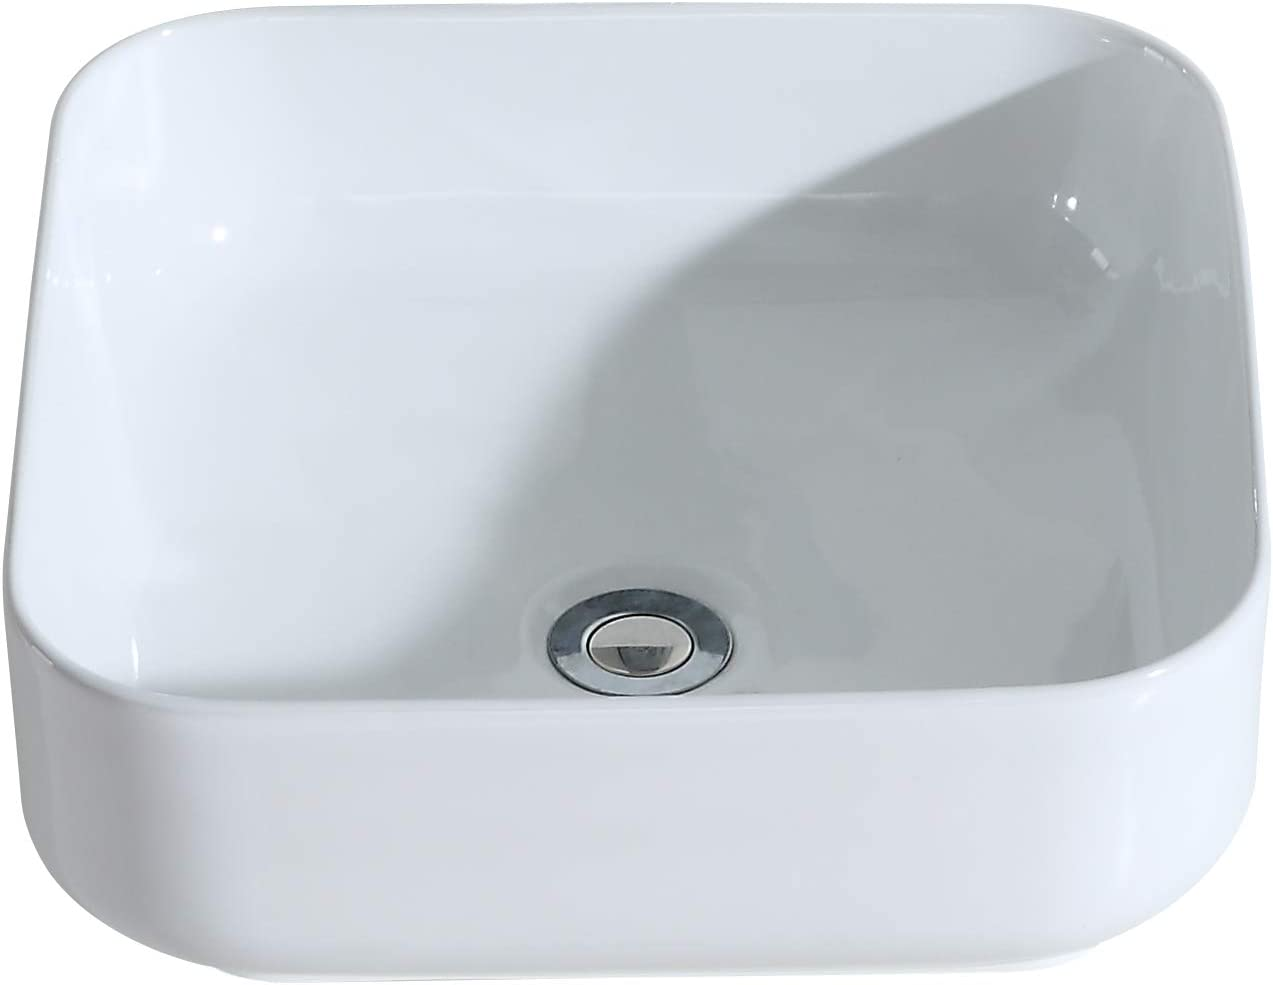 Eridanus Ceramic Vessel Sink, [Series Juno], Wash Basin Sink with [Smooth Finish] Countertop Mounted [Easy Installation] for Lavatory Vanity Cabinet, 40 X 40 X 14CM